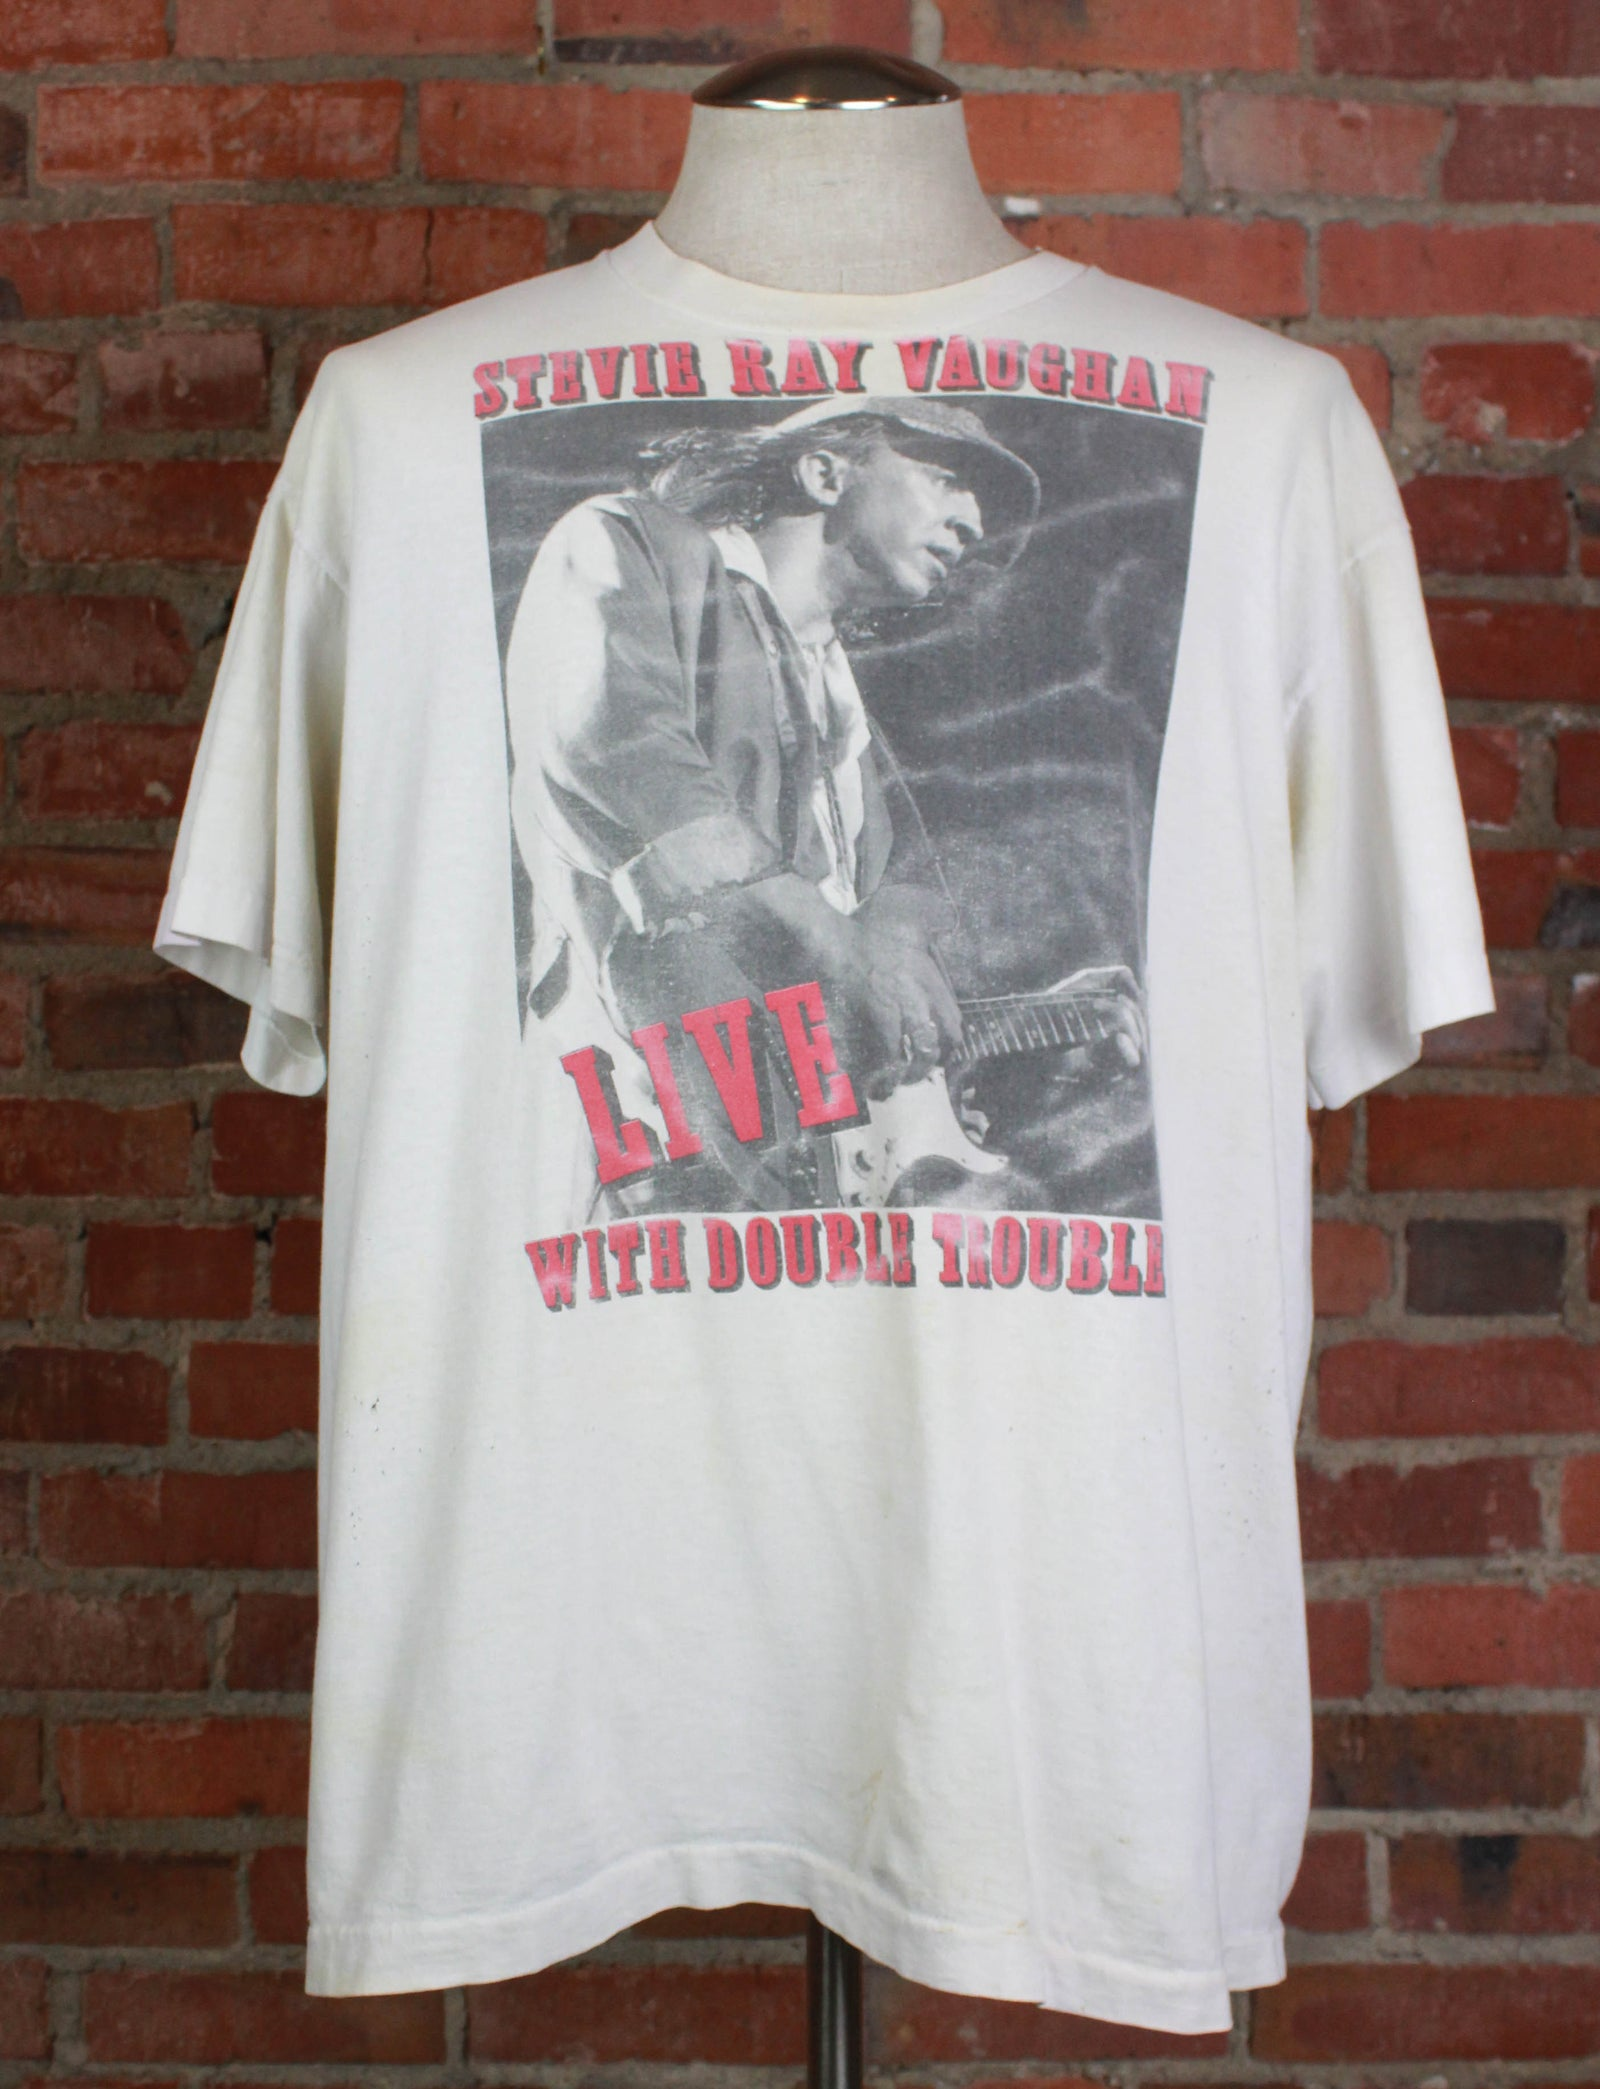 Vintage 1989 Stevie Ray Vaughan Concert T Shirt Double Trouble North American Tour White Unisex XL